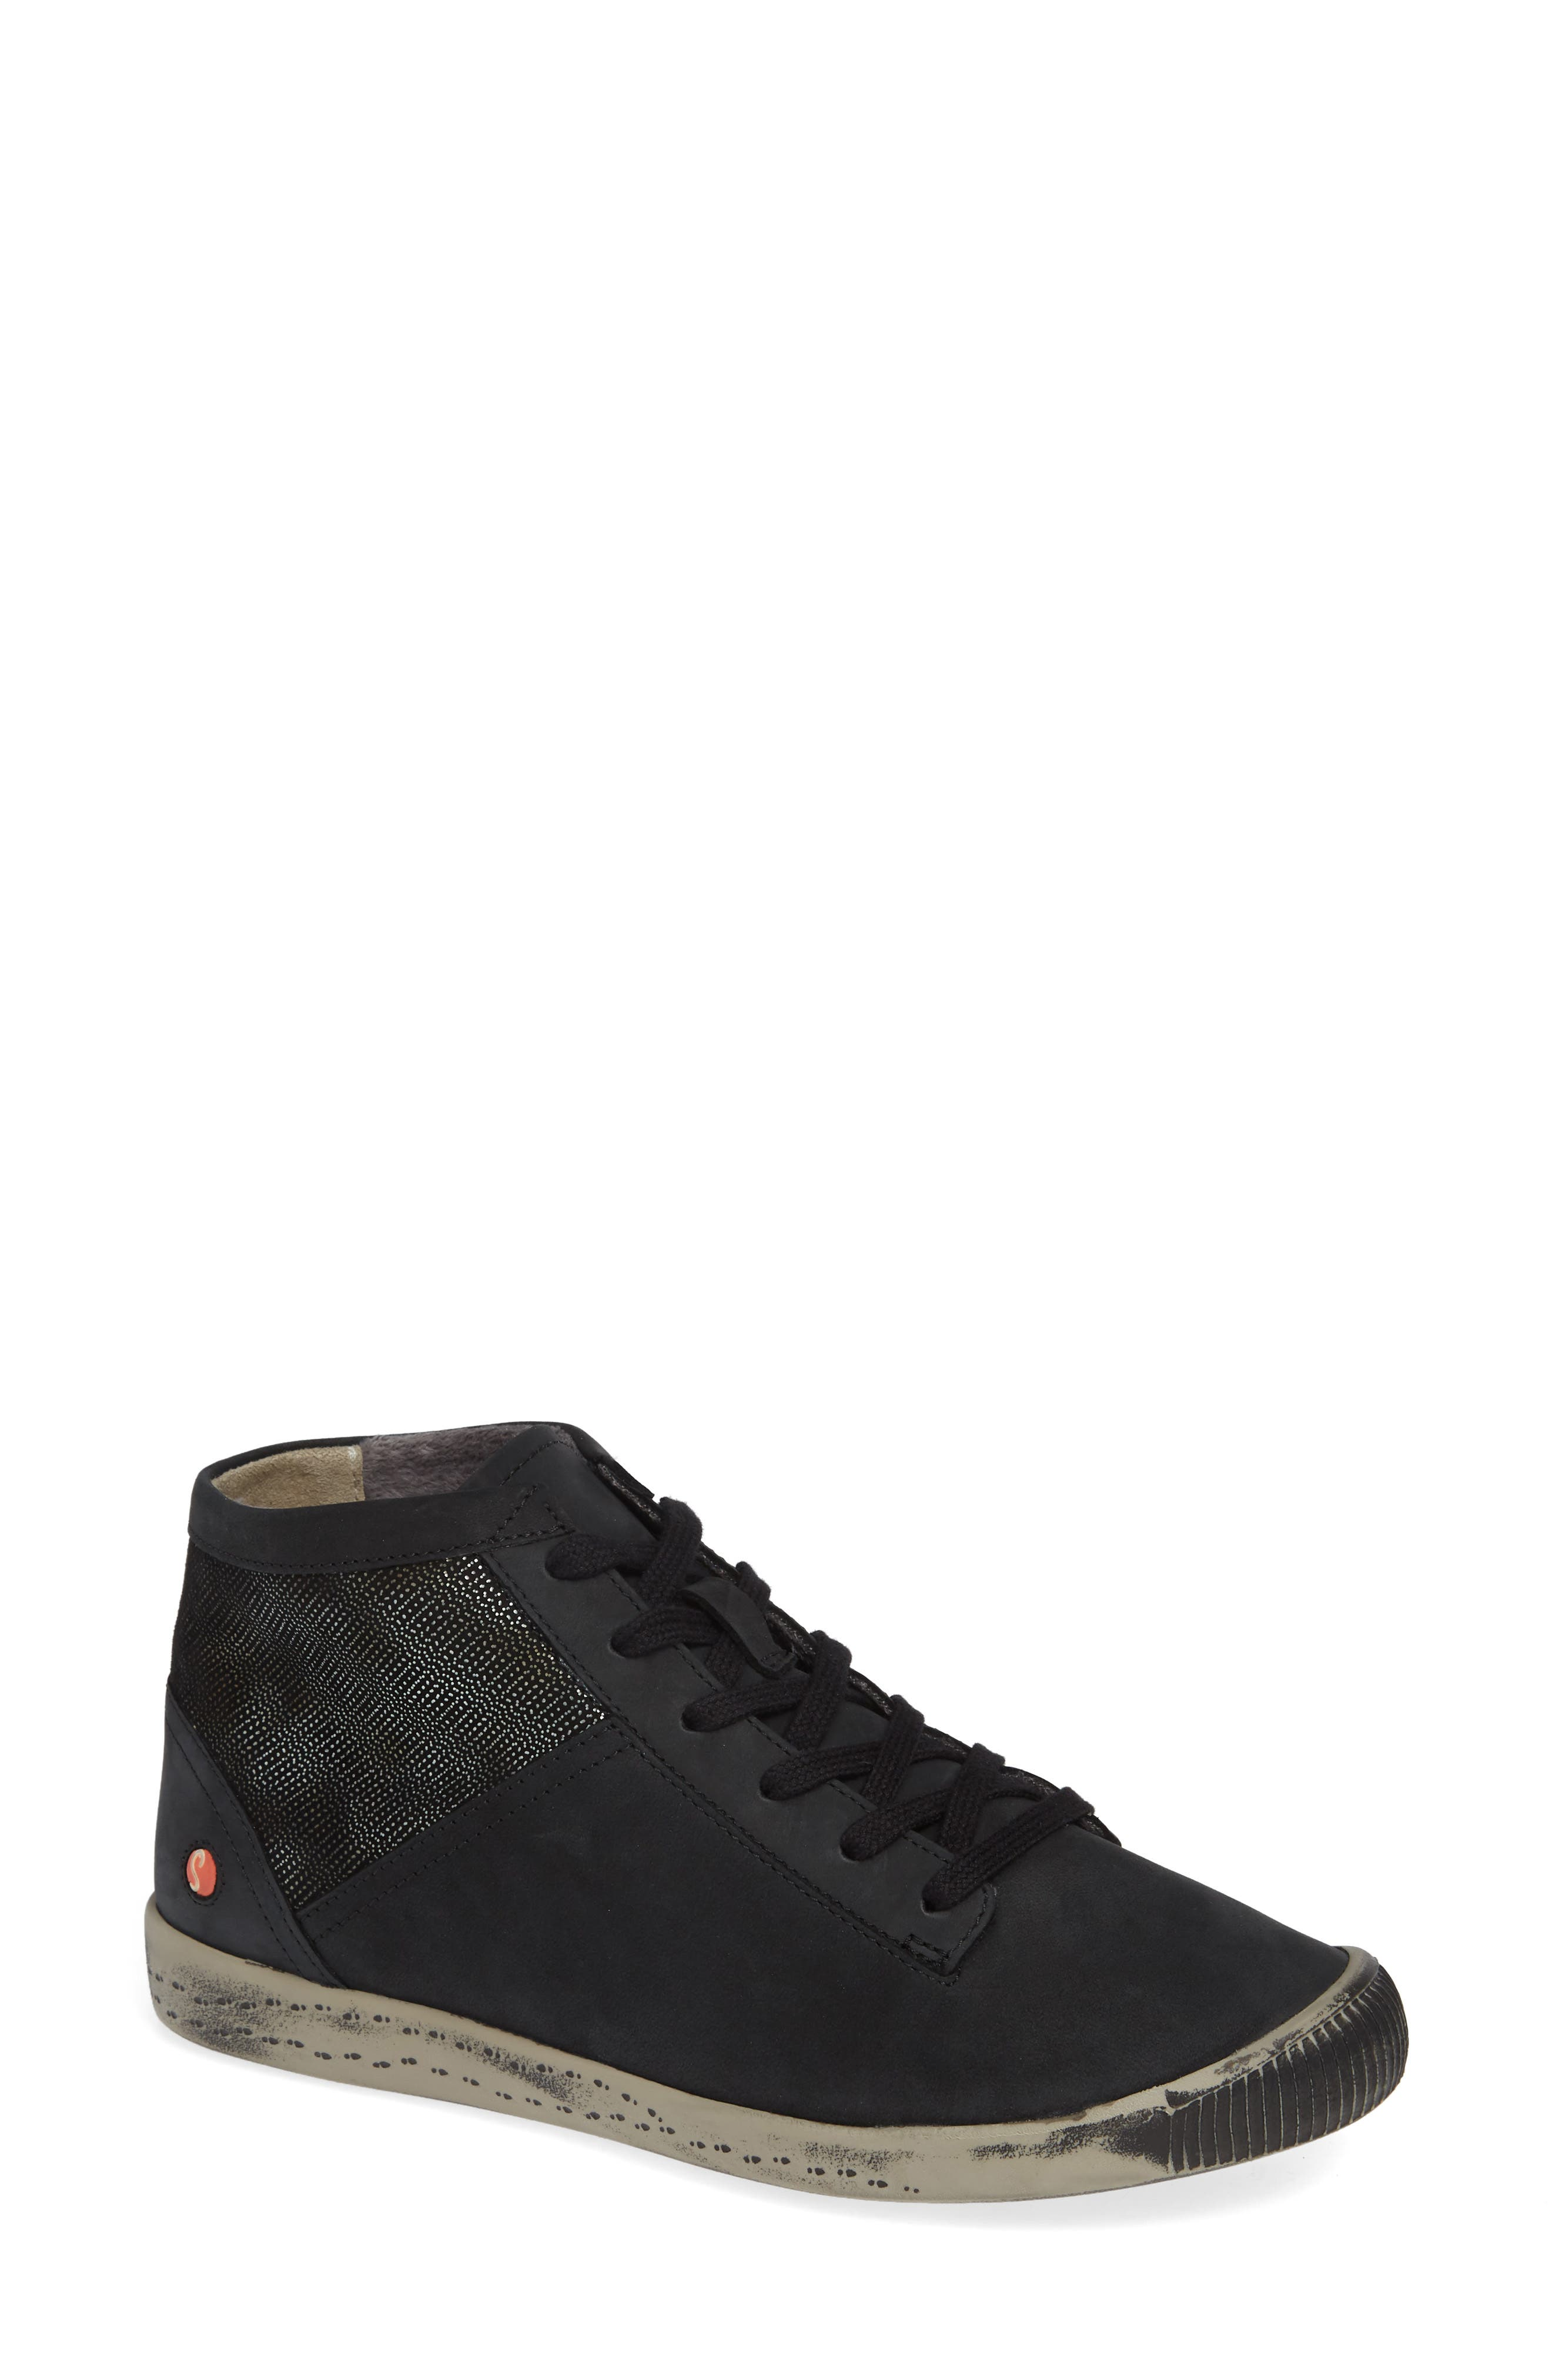 Softinos By Fly London Iap High Top Sneaker - Black